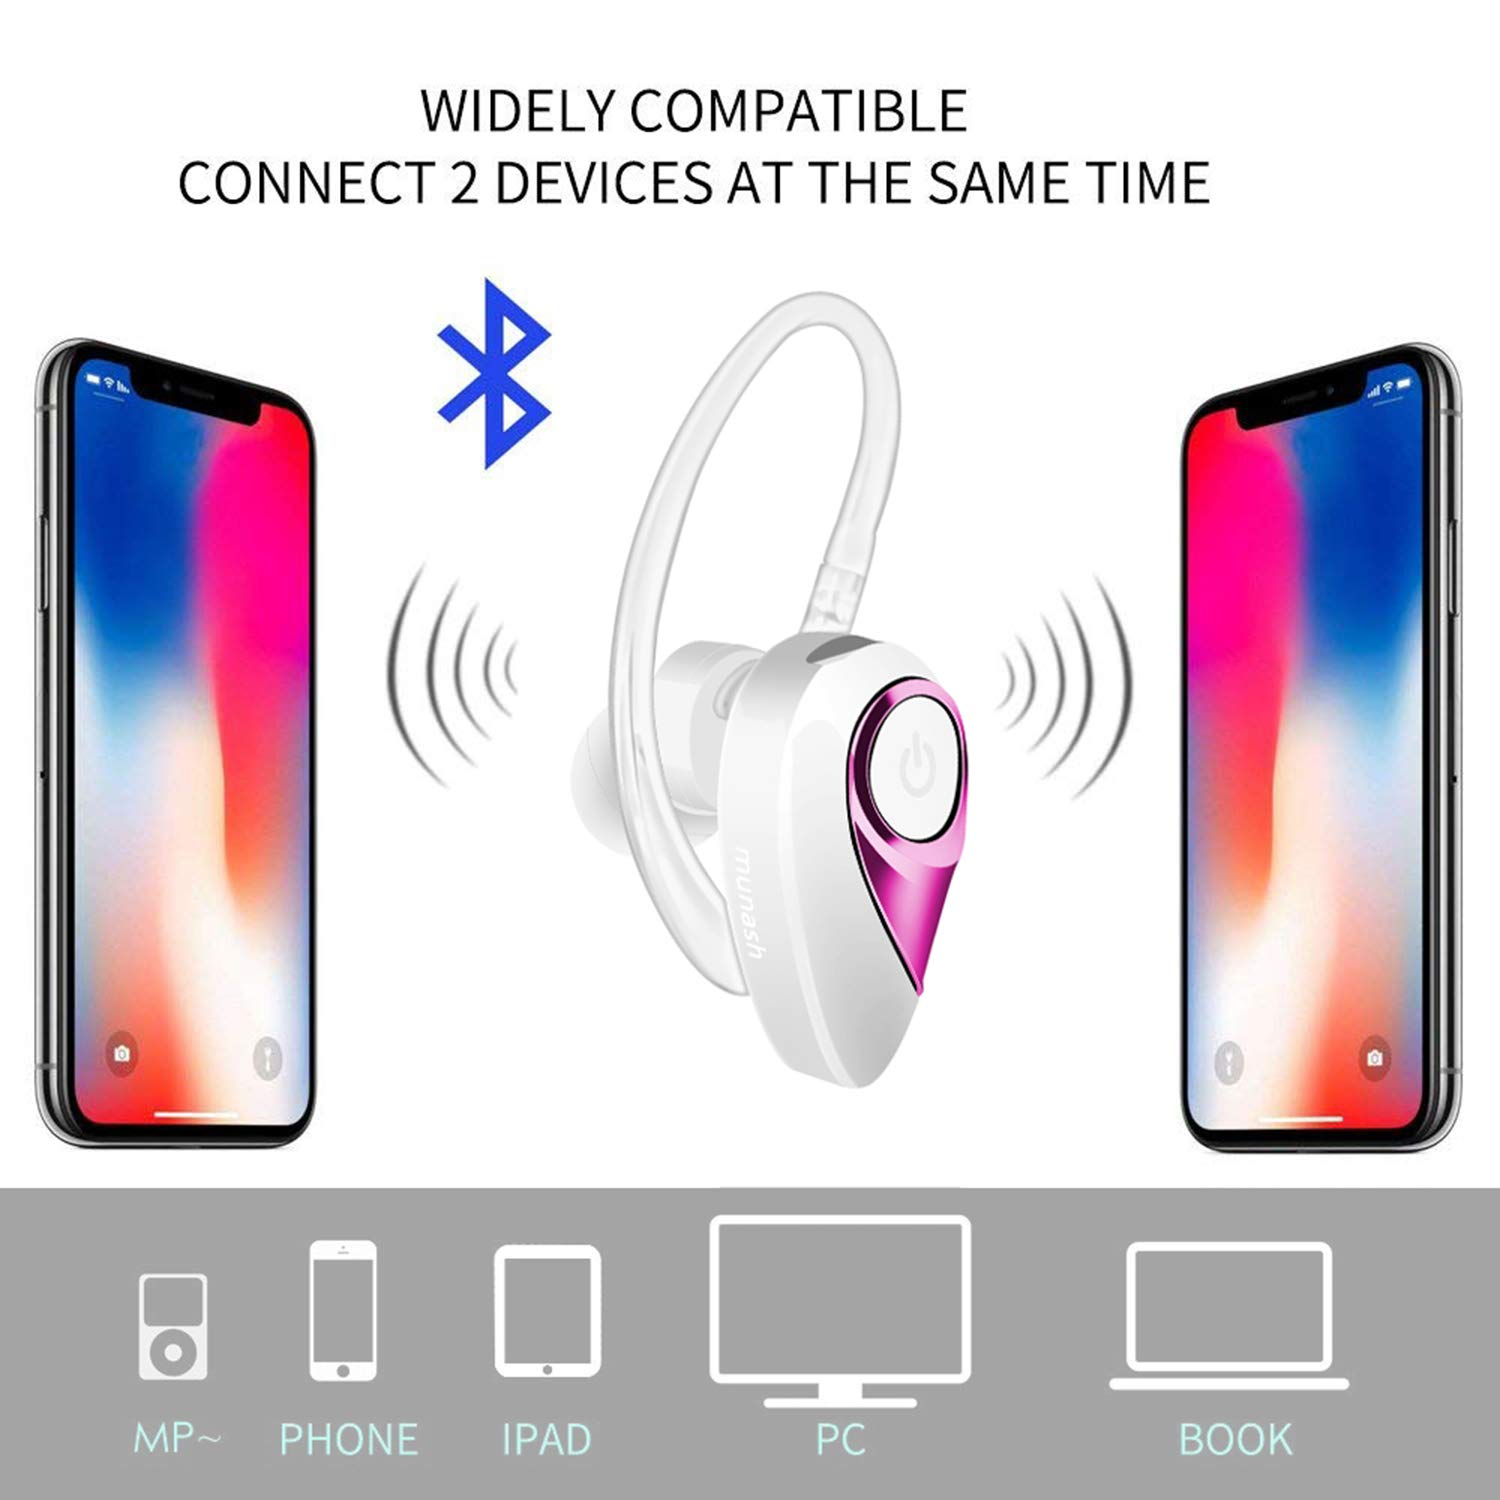 Bluetooth Headset, Munash V4 2 Wireless Earpiece with Snug Fit Design, DSP  Noise Cancelling, 8H Playtime, HD Sound Earbud for iPhone Android Cell